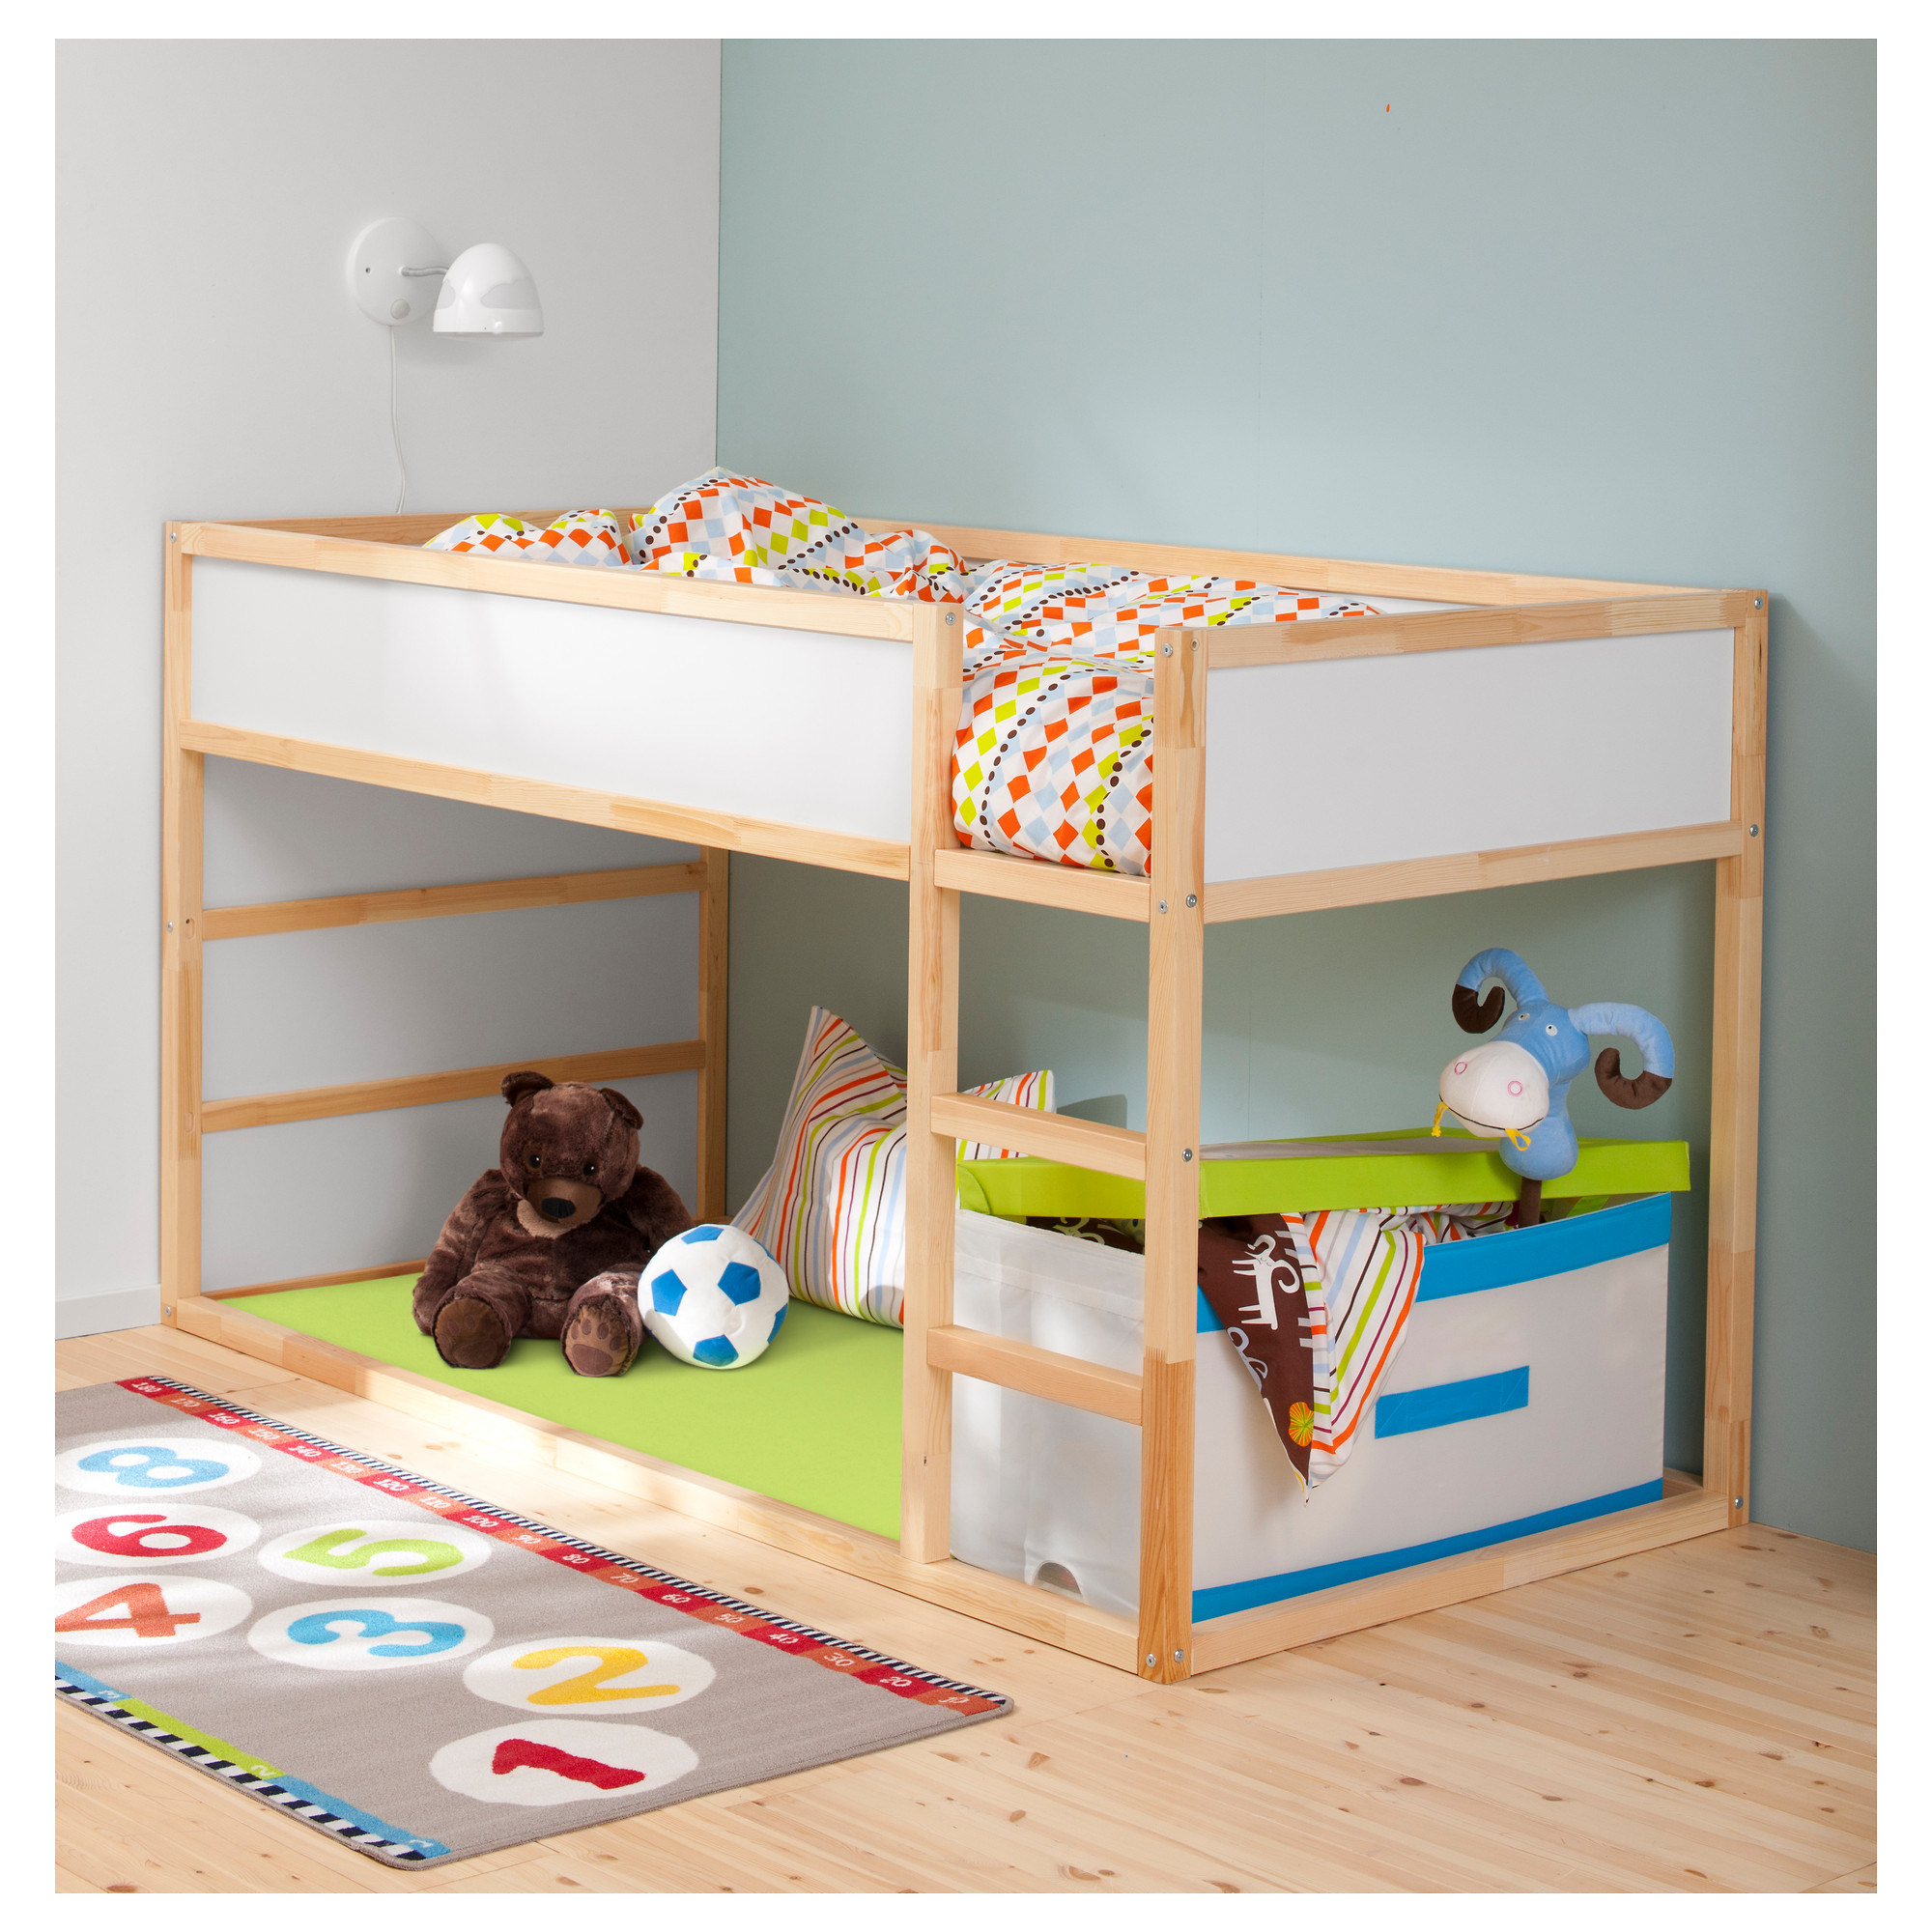 childrens beds kura reversible bed - ikea VQZECNB